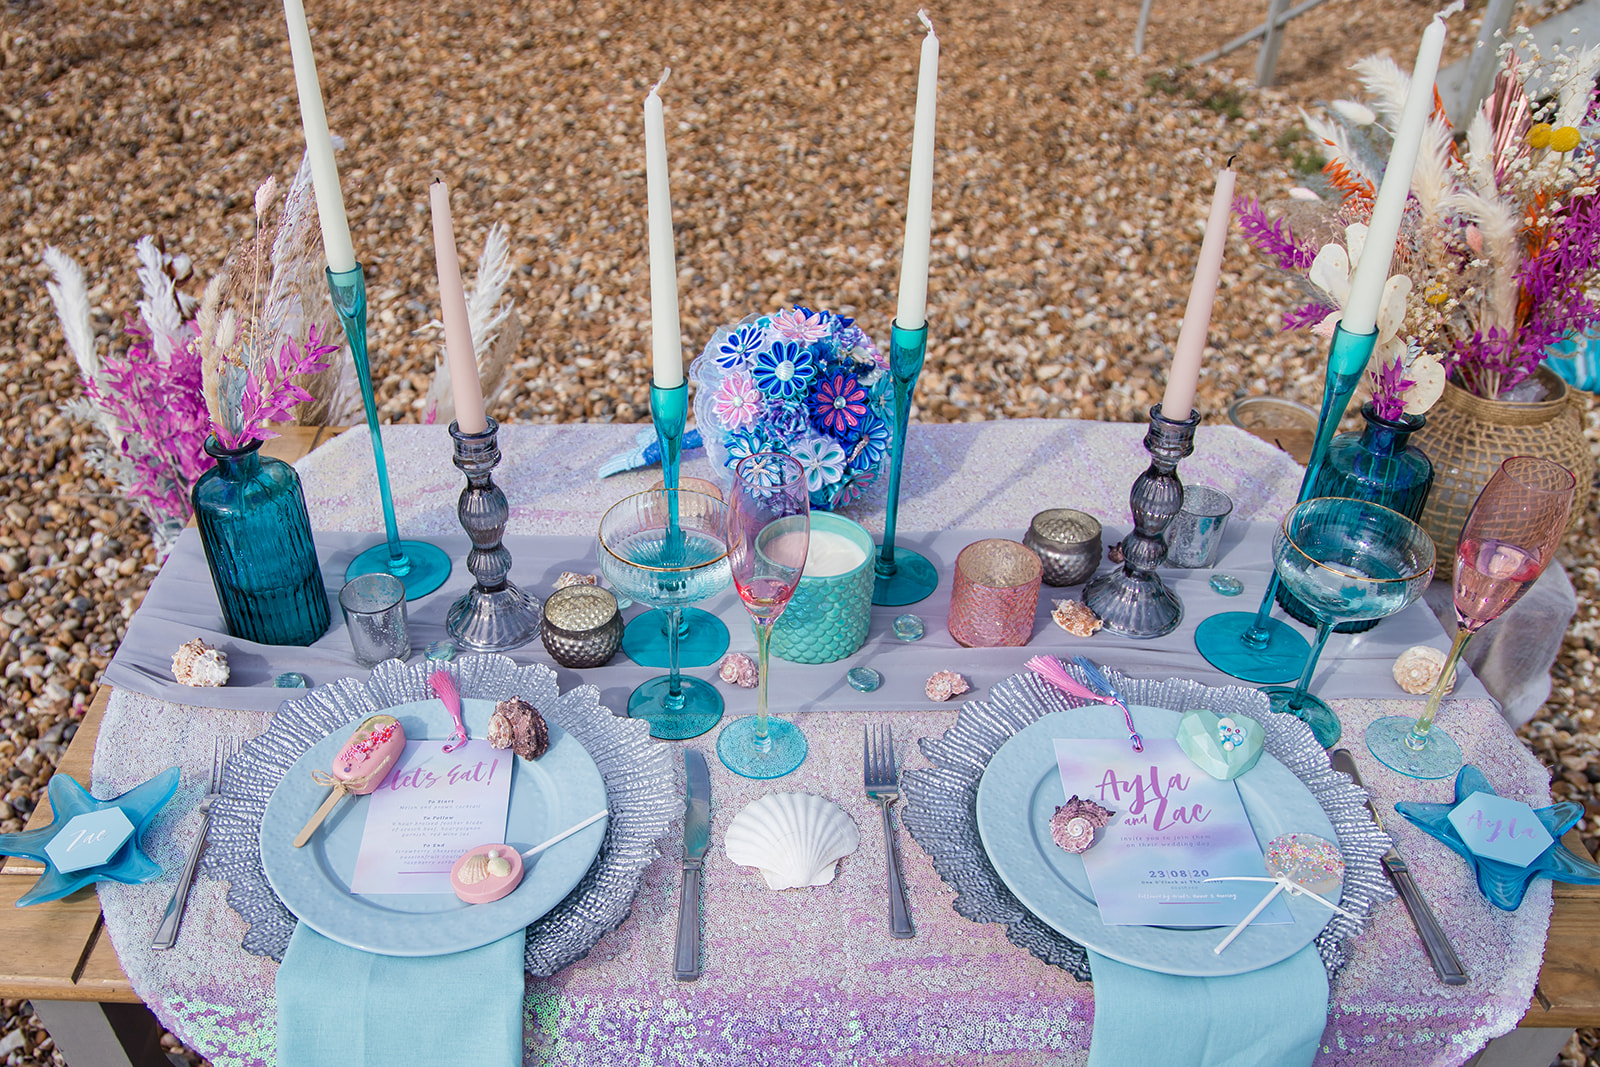 mermaid wedding - beach wedding - quirky wedding - unique wedding - alternative seaside wedding - alternative wedding - sparkly wedding - pastel mermaid colour scheme